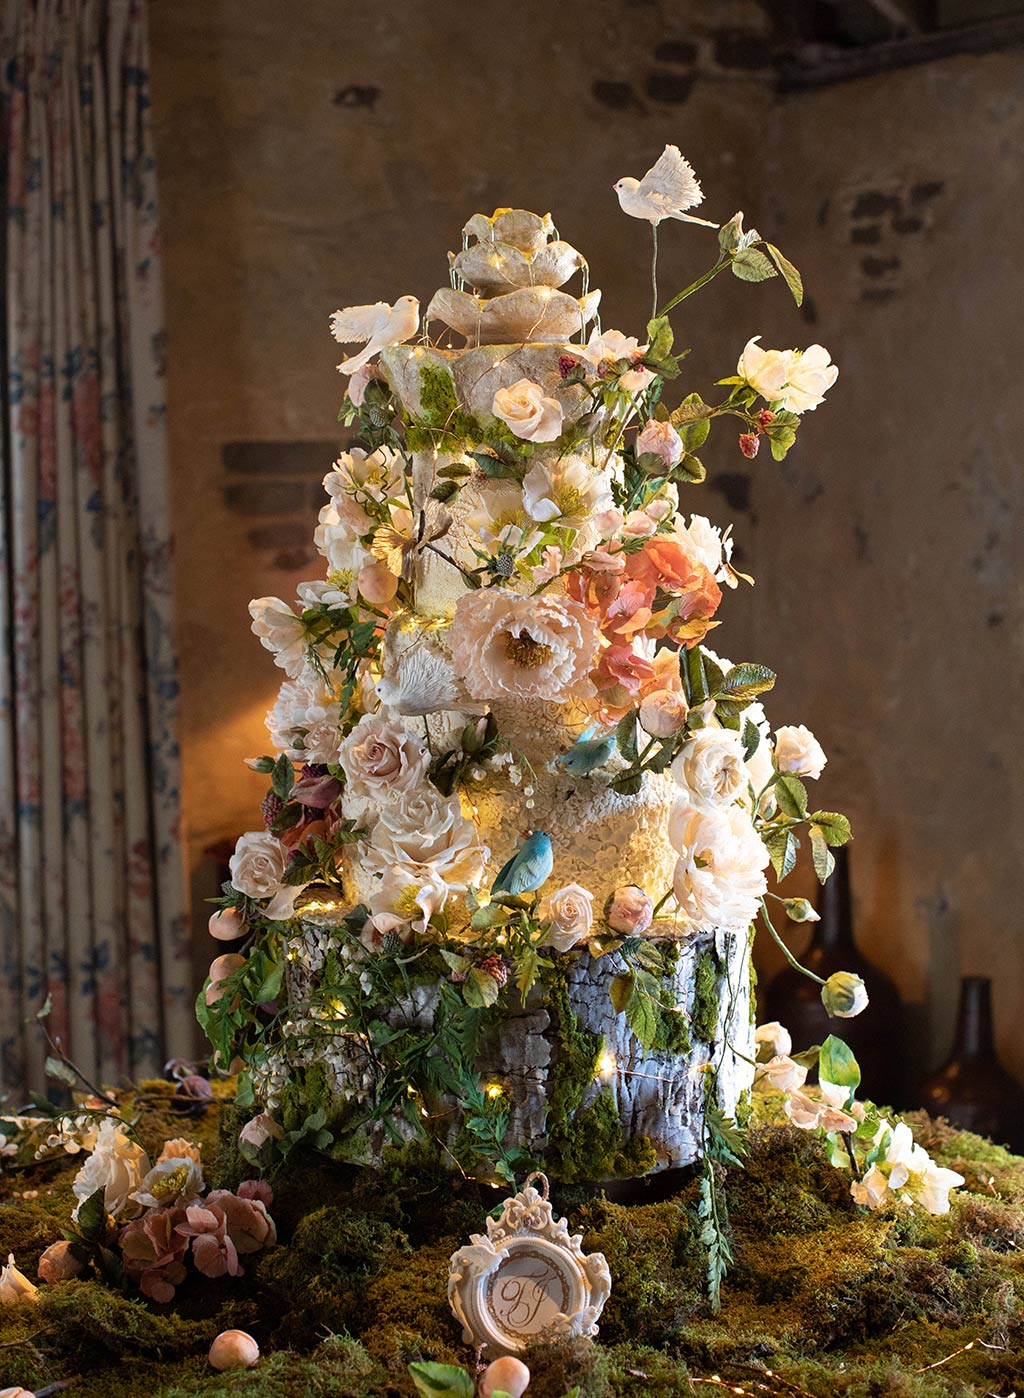 Wedding Cake with lavish floral decorations